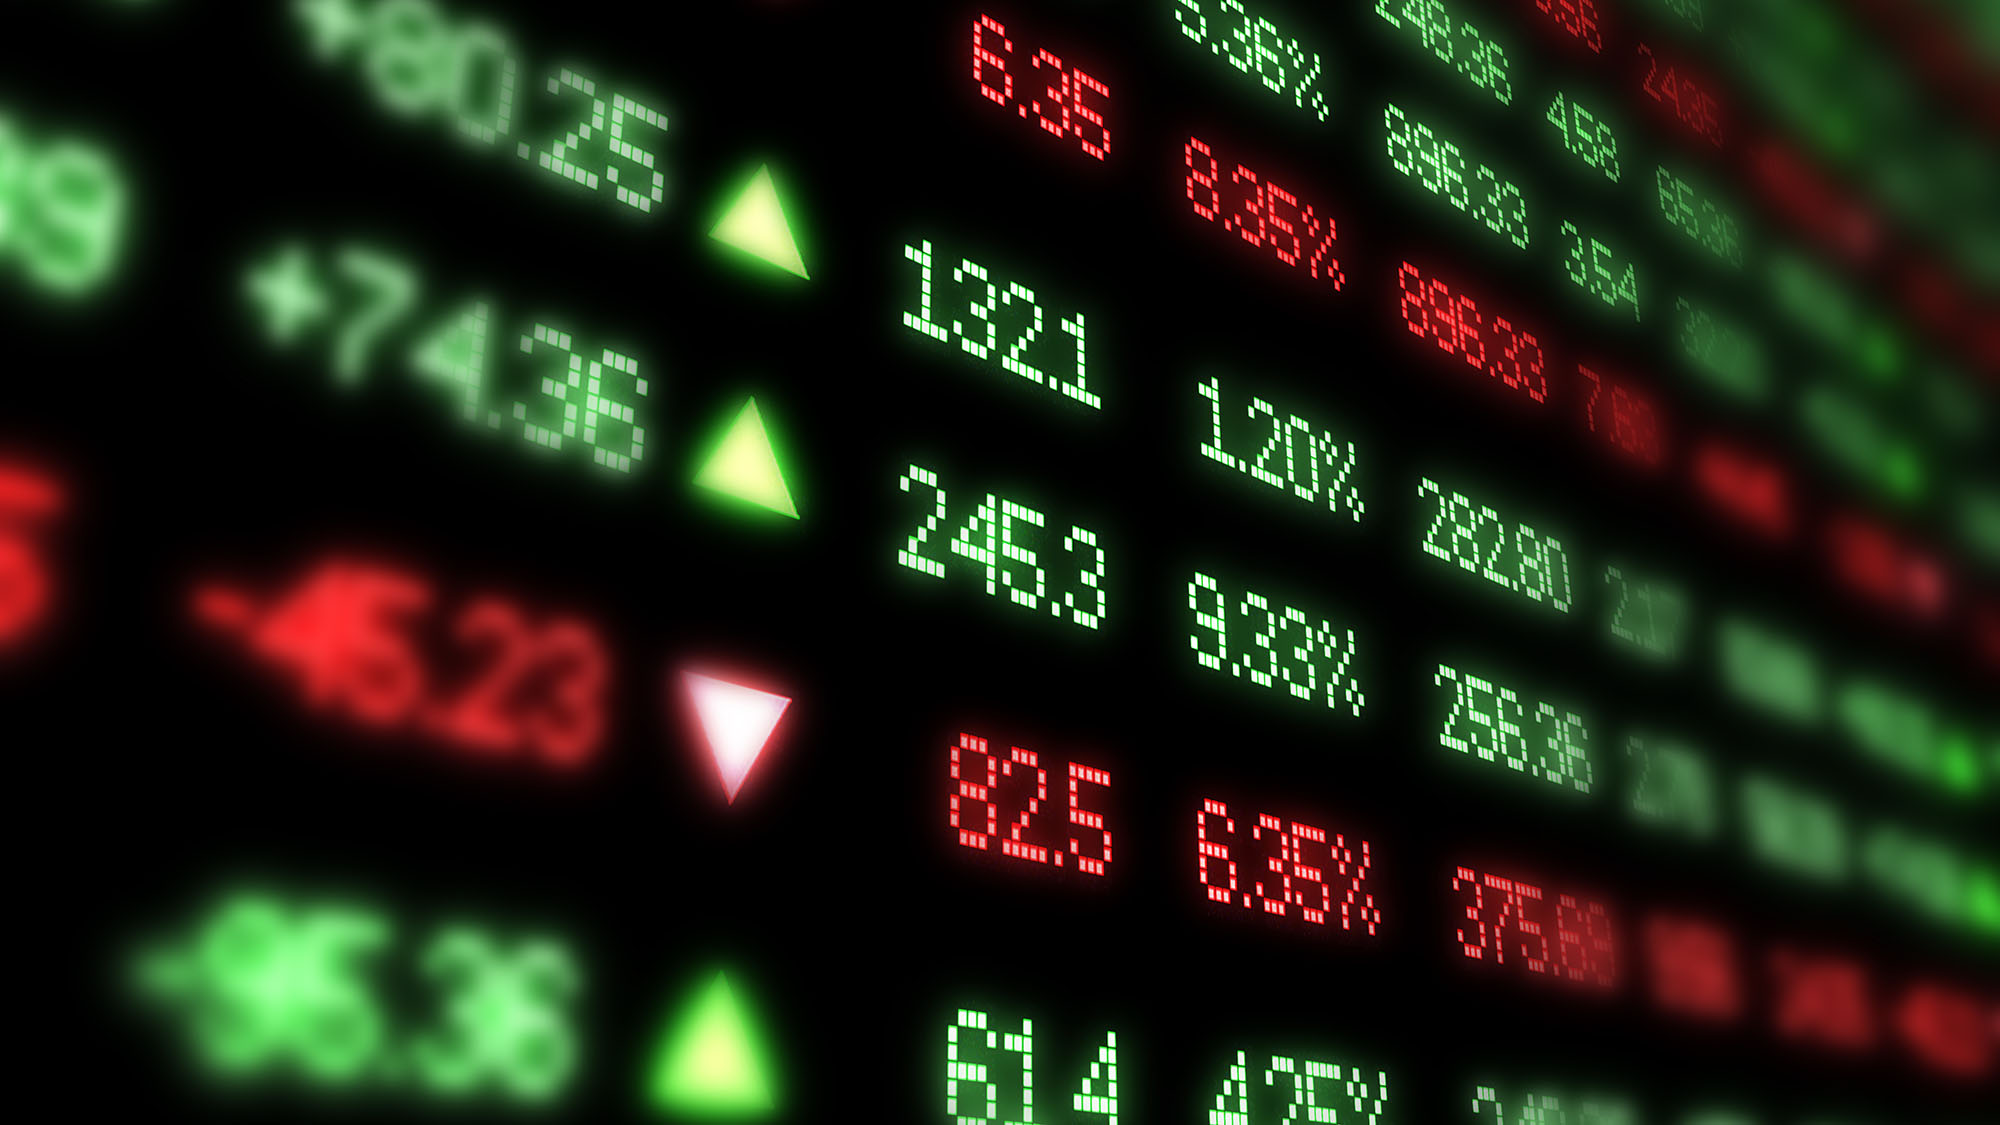 Beginner's guide to the stock market